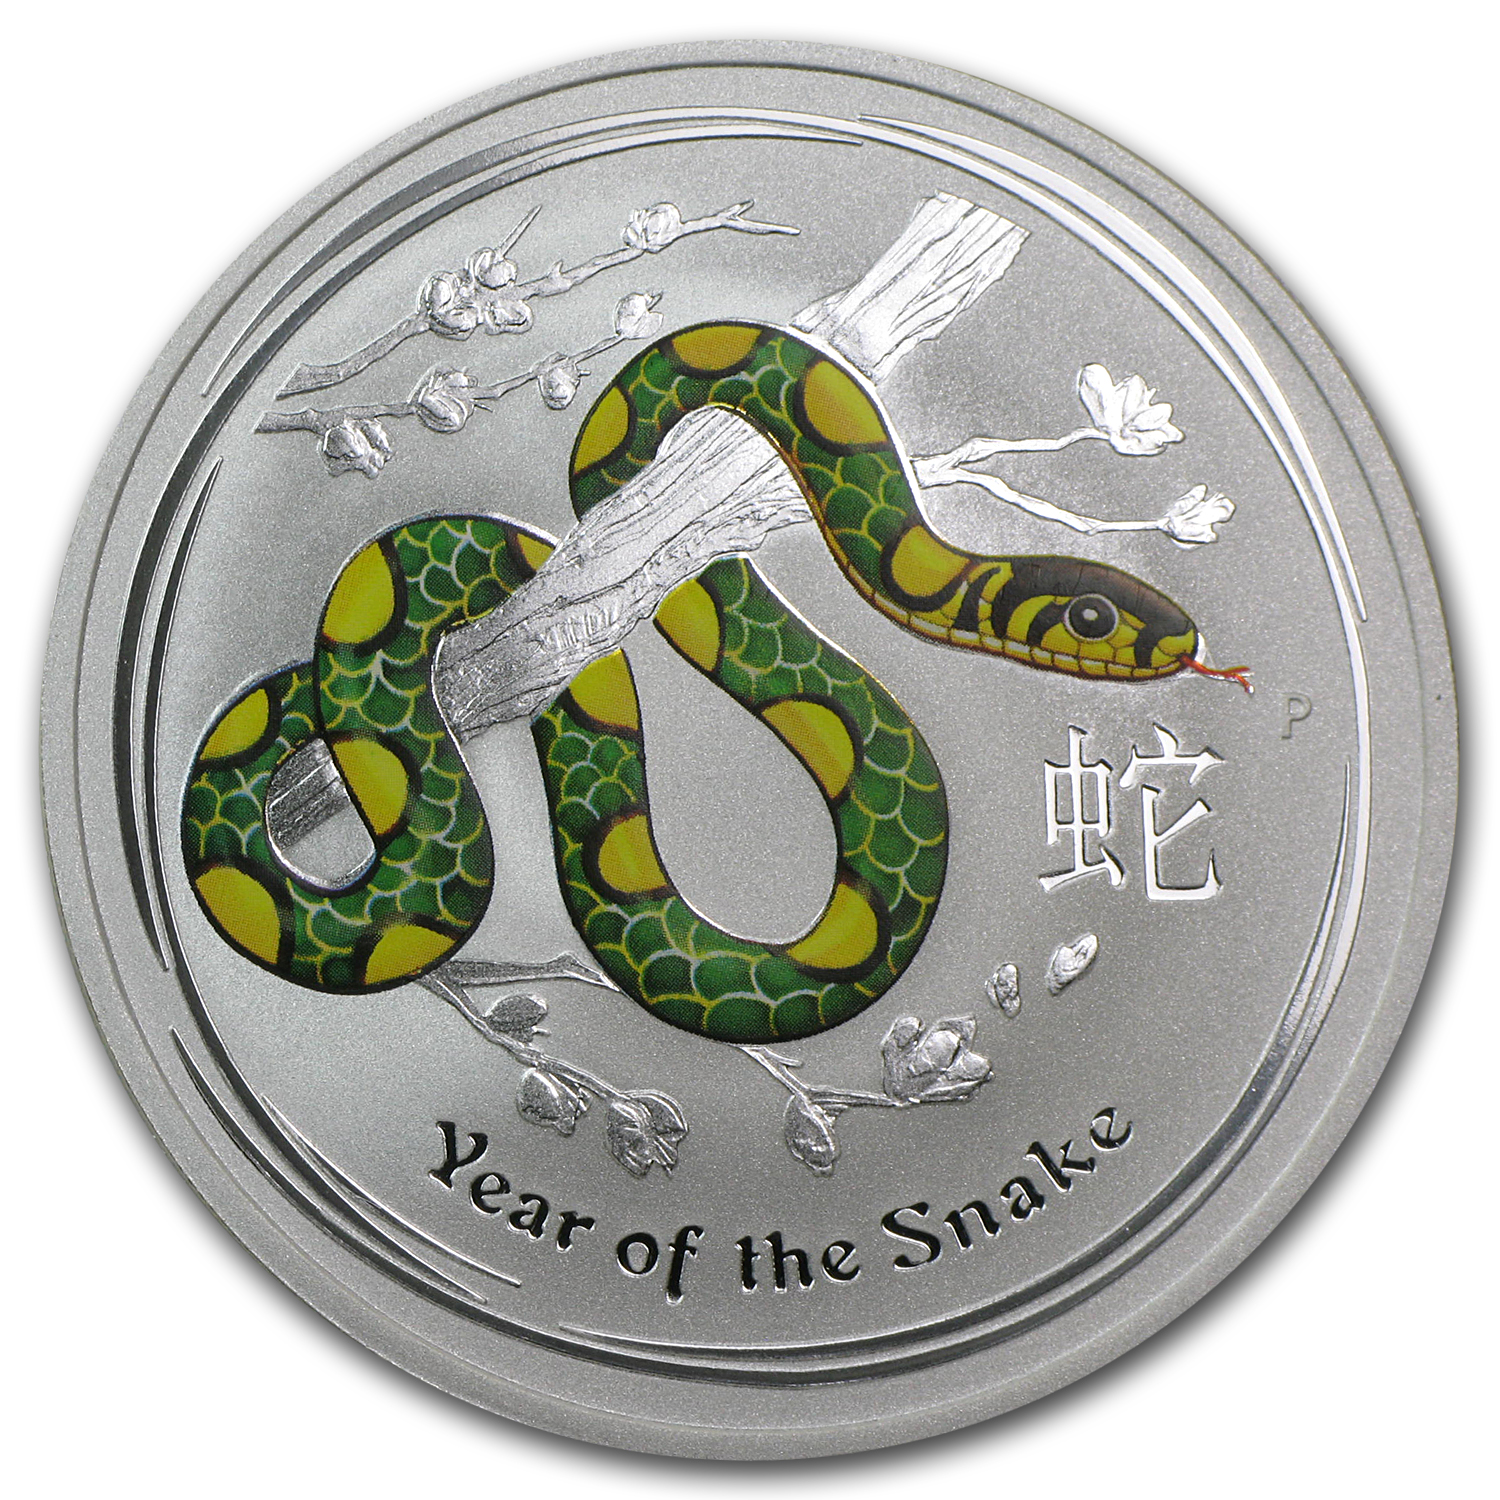 2013 1 oz Australian Silver Year of the Snake Colorized Coin